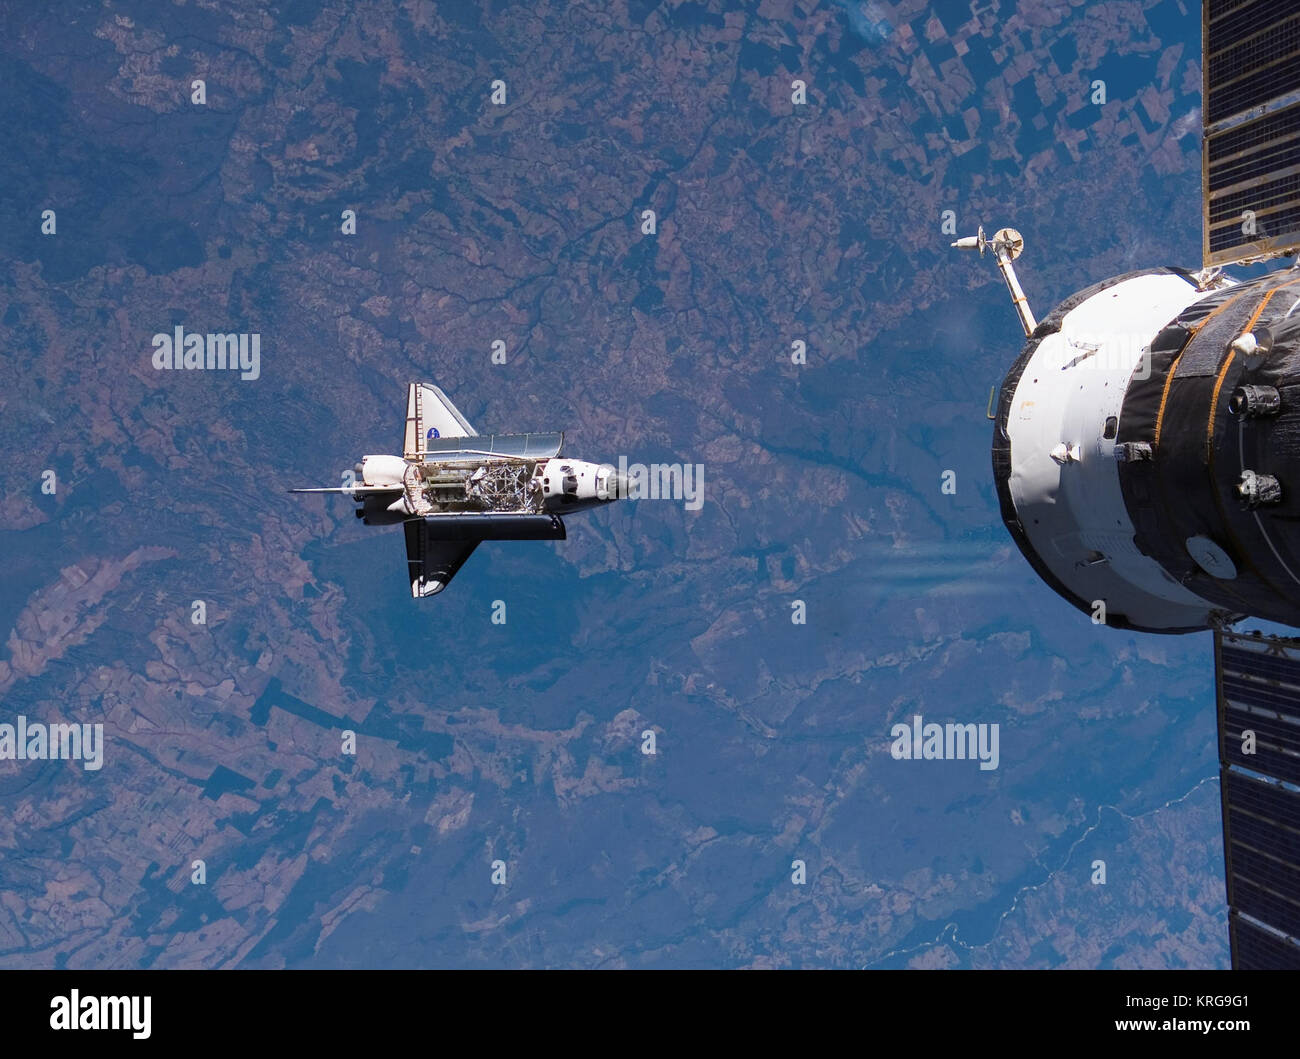 STS 117 approach - Stock Image